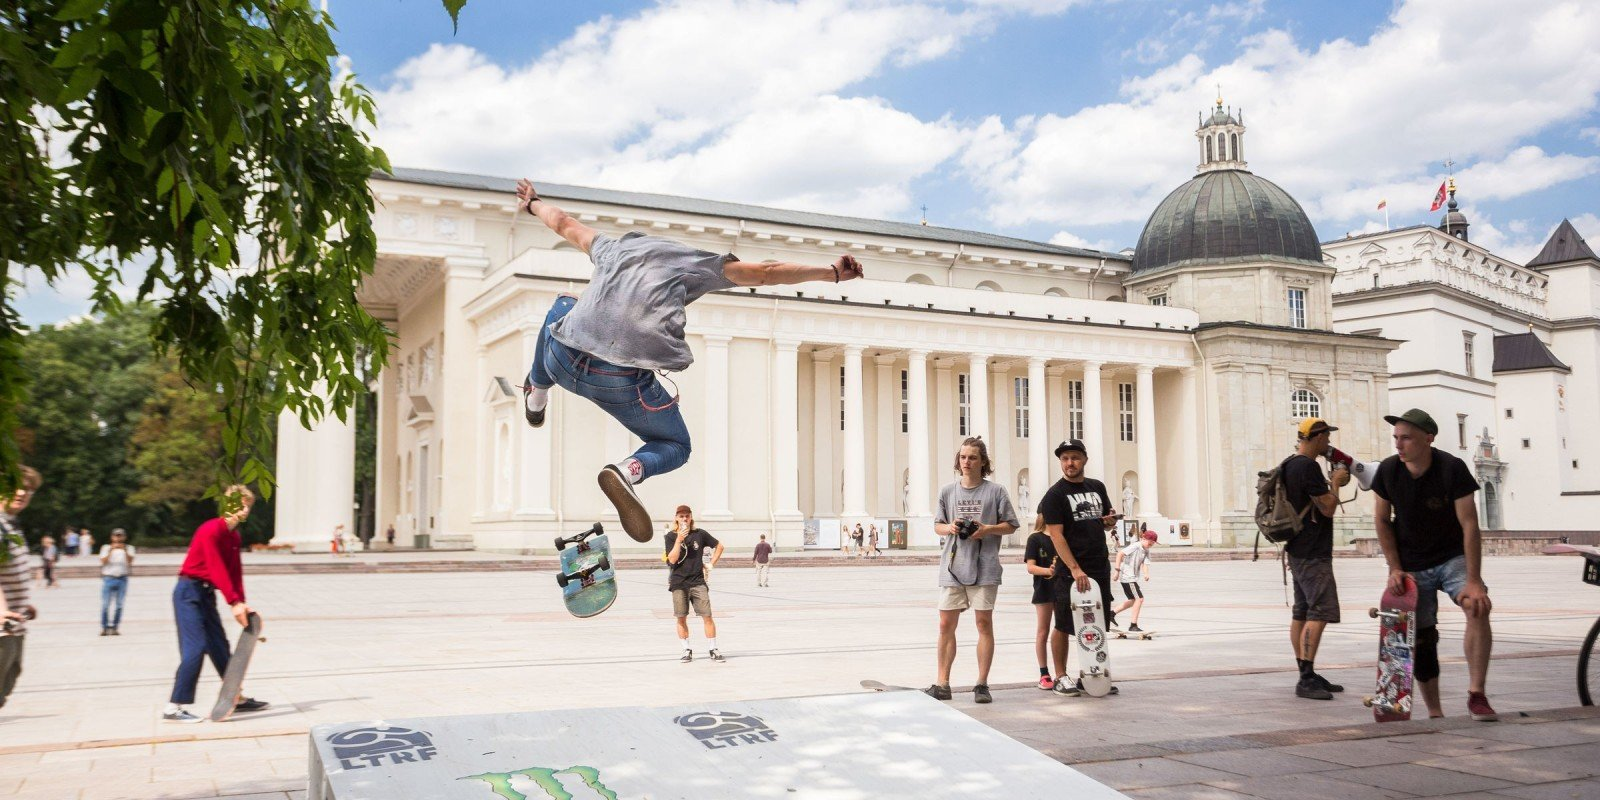 International Go Skateboarding Day 2018 in Vilnius. Guys hitting the streets of Vilnius.